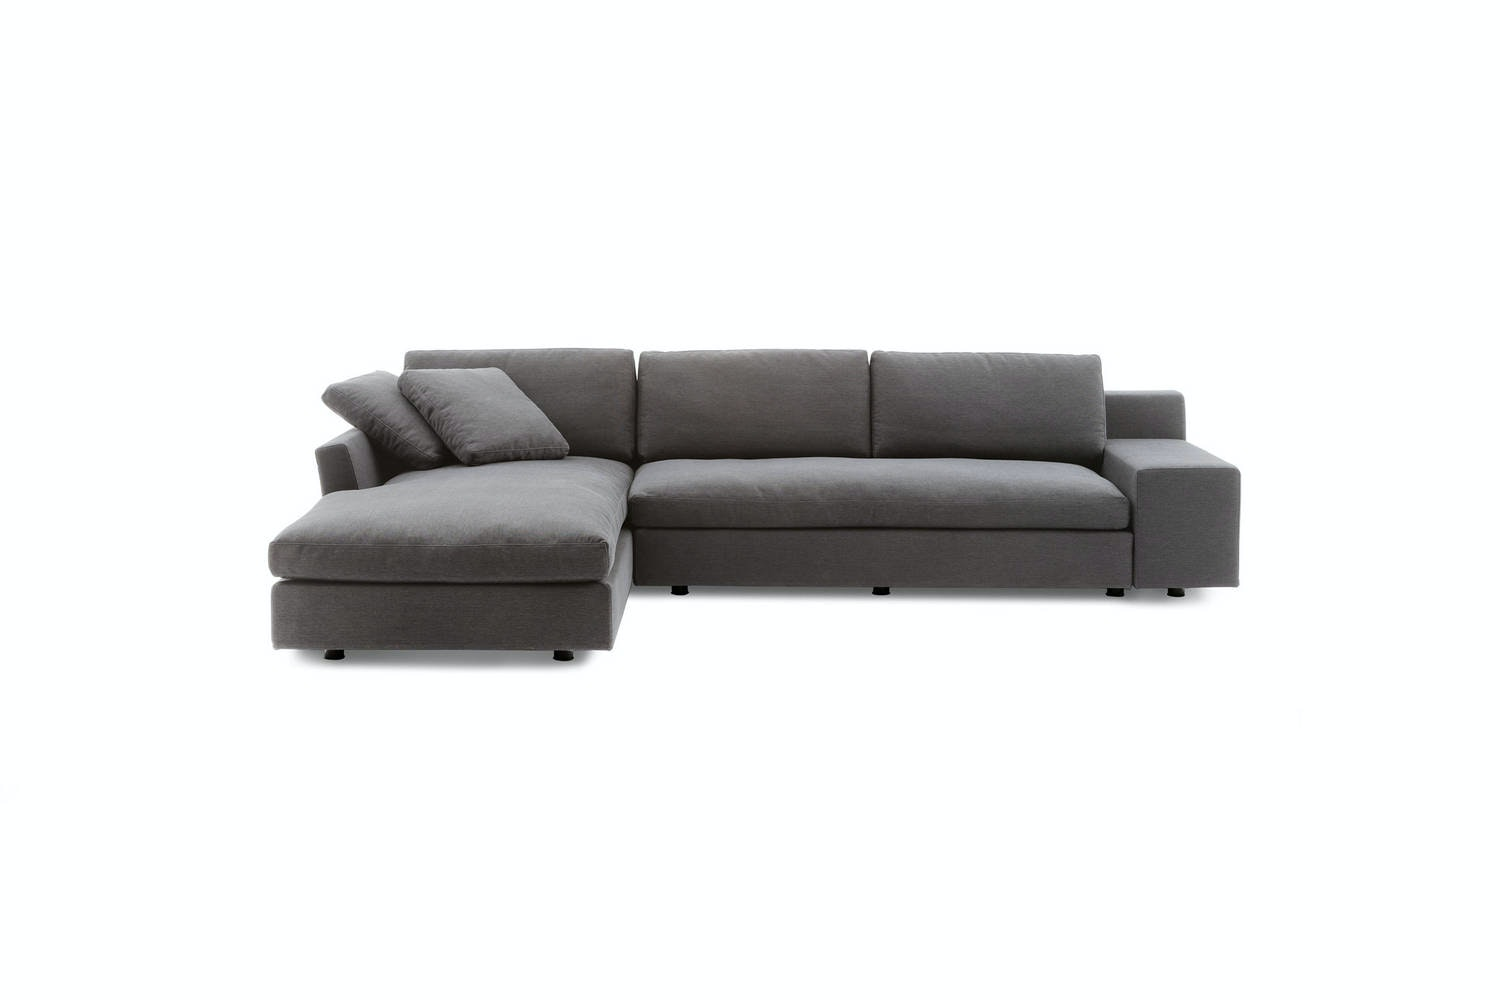 235-236 Mister Sofa by Philippe Starck for Cassina